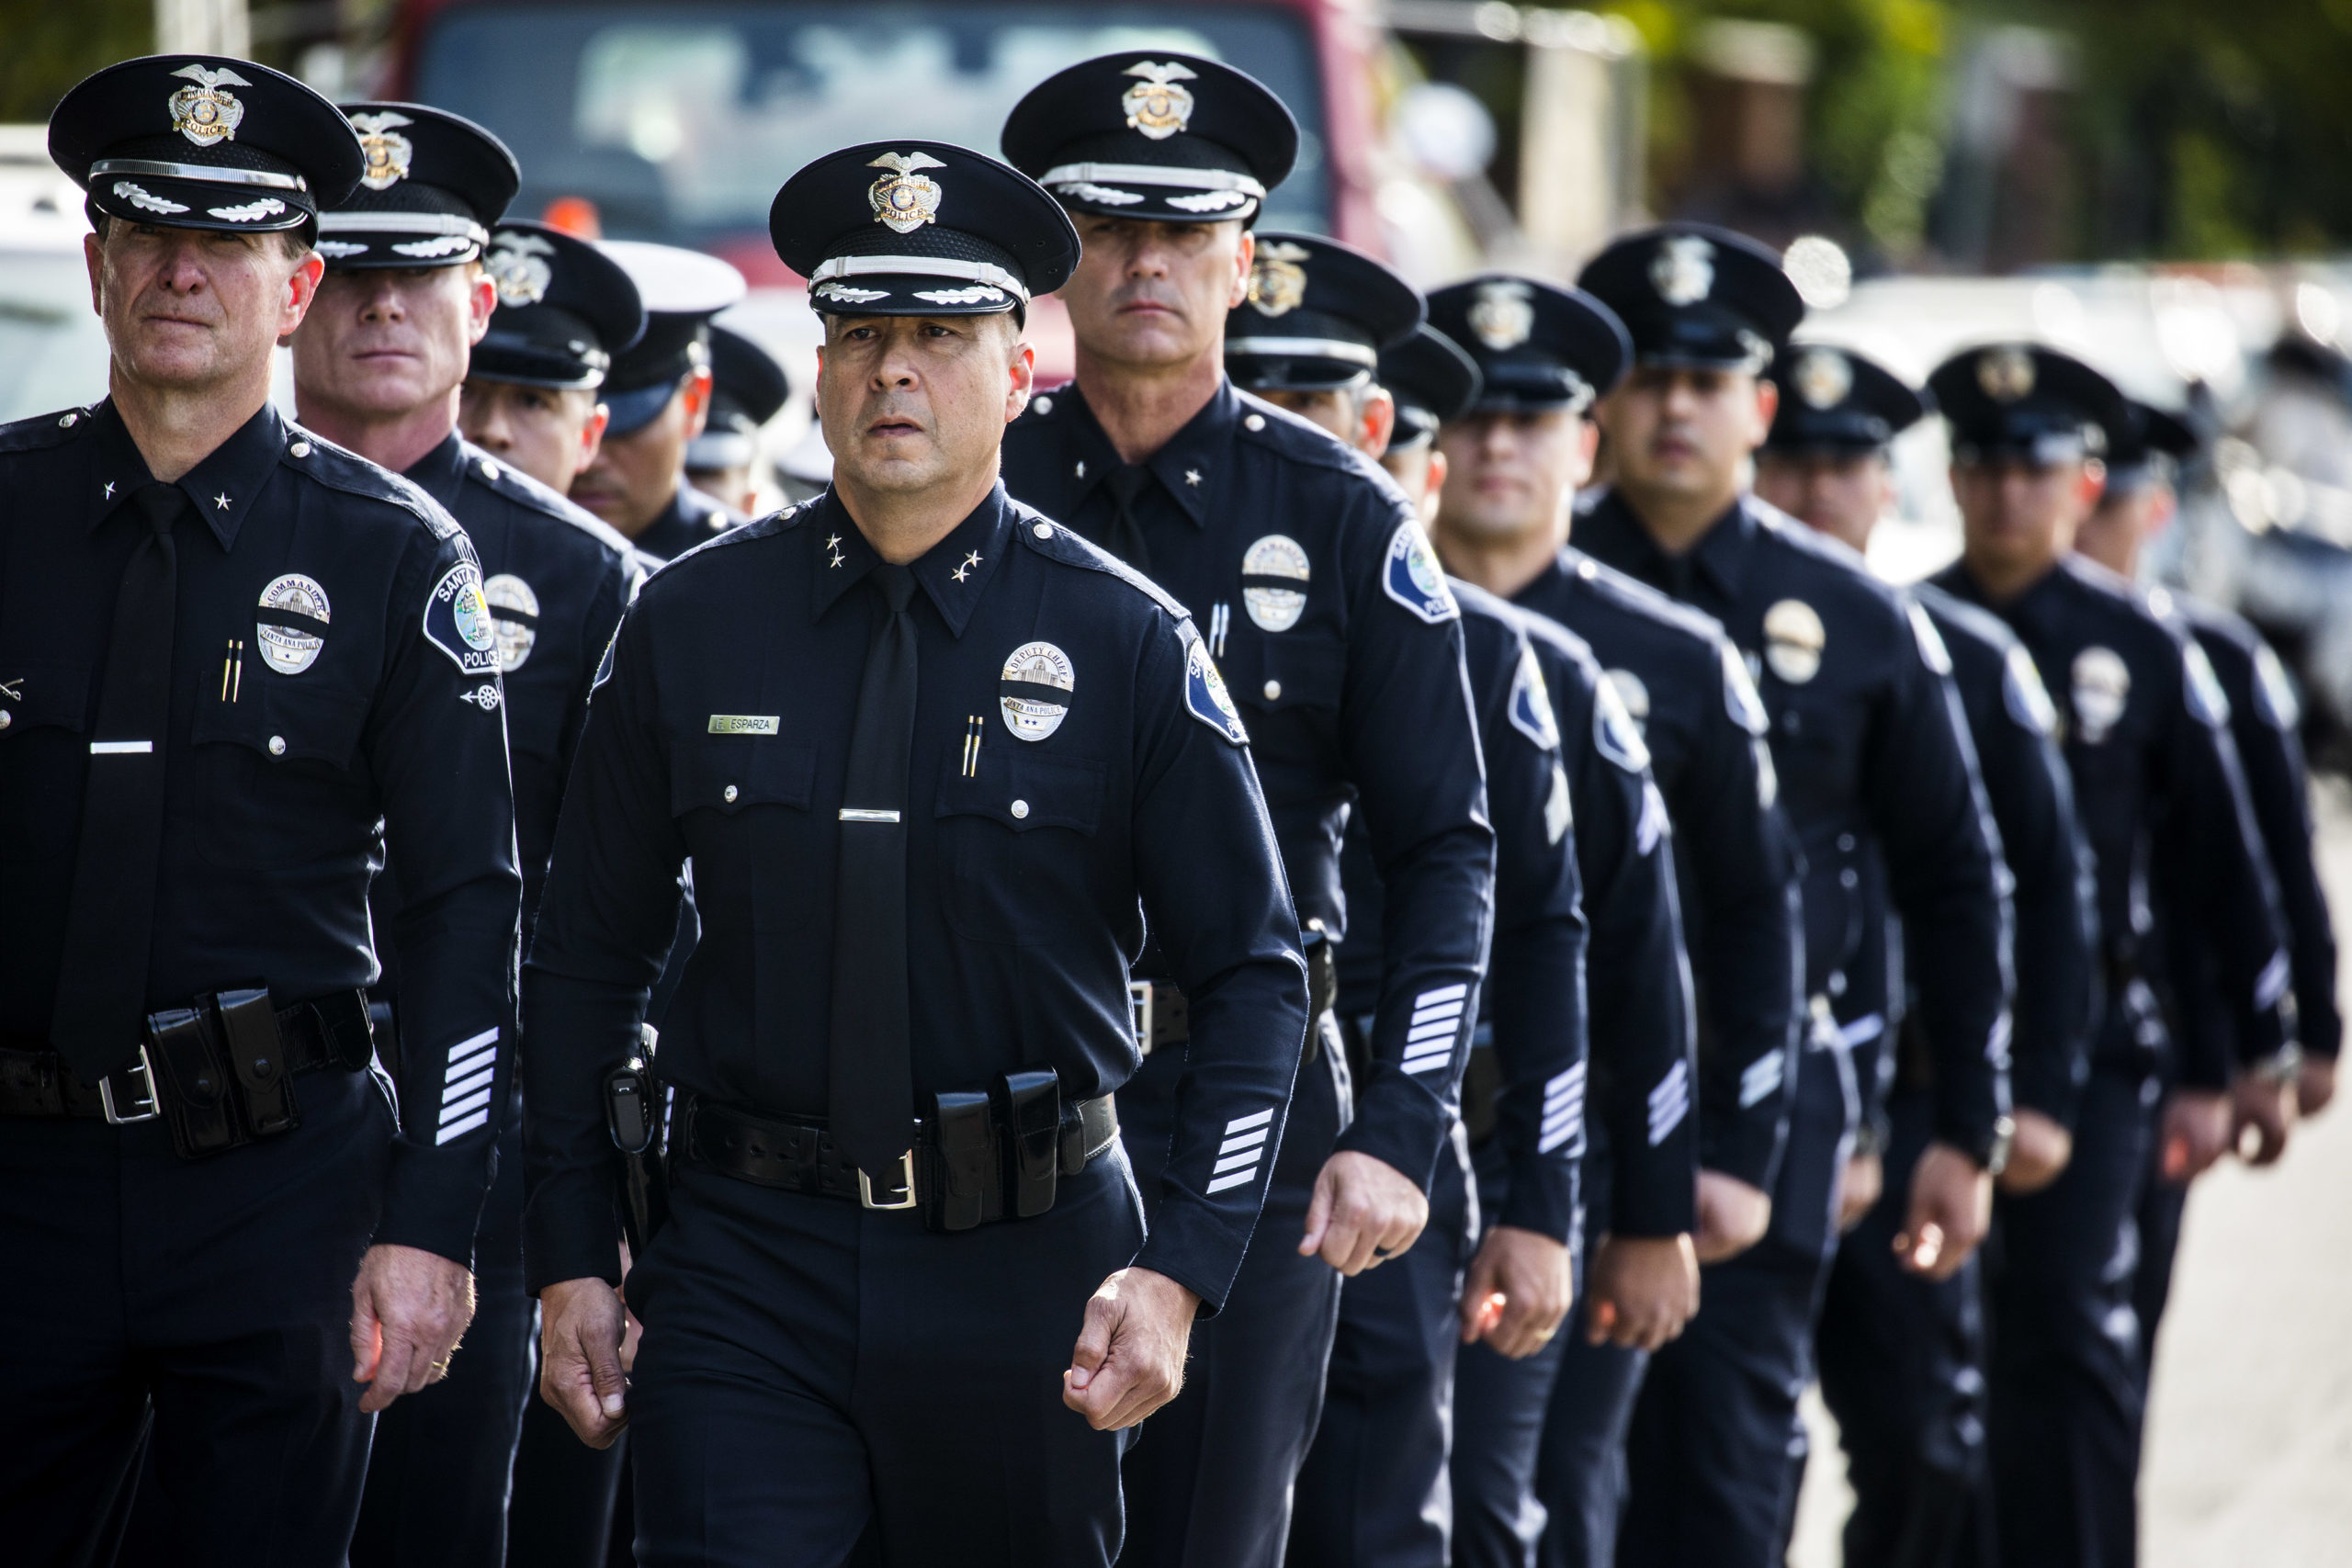 WESTLAKE VILLAGE, CA - NOVEMBER 15: Santa Ana Police Officers leave the service of Sgt. Ron Helus, who was killed Wednesday, Nov. 7, 2018, in a deadly shooting at a country music bar, the Borderline Bar and Grill in Thousand Oaks, Calif., following his memorial service at The Calvary Community Church, on November 15, 2018 in Westlake Village, California. Sgt. Helus was killed in a mass shooting at the Borderline Bar and Grill in Thousand Oaks, California on November 7. (Photo by Barbara Davidson/Getty Images)